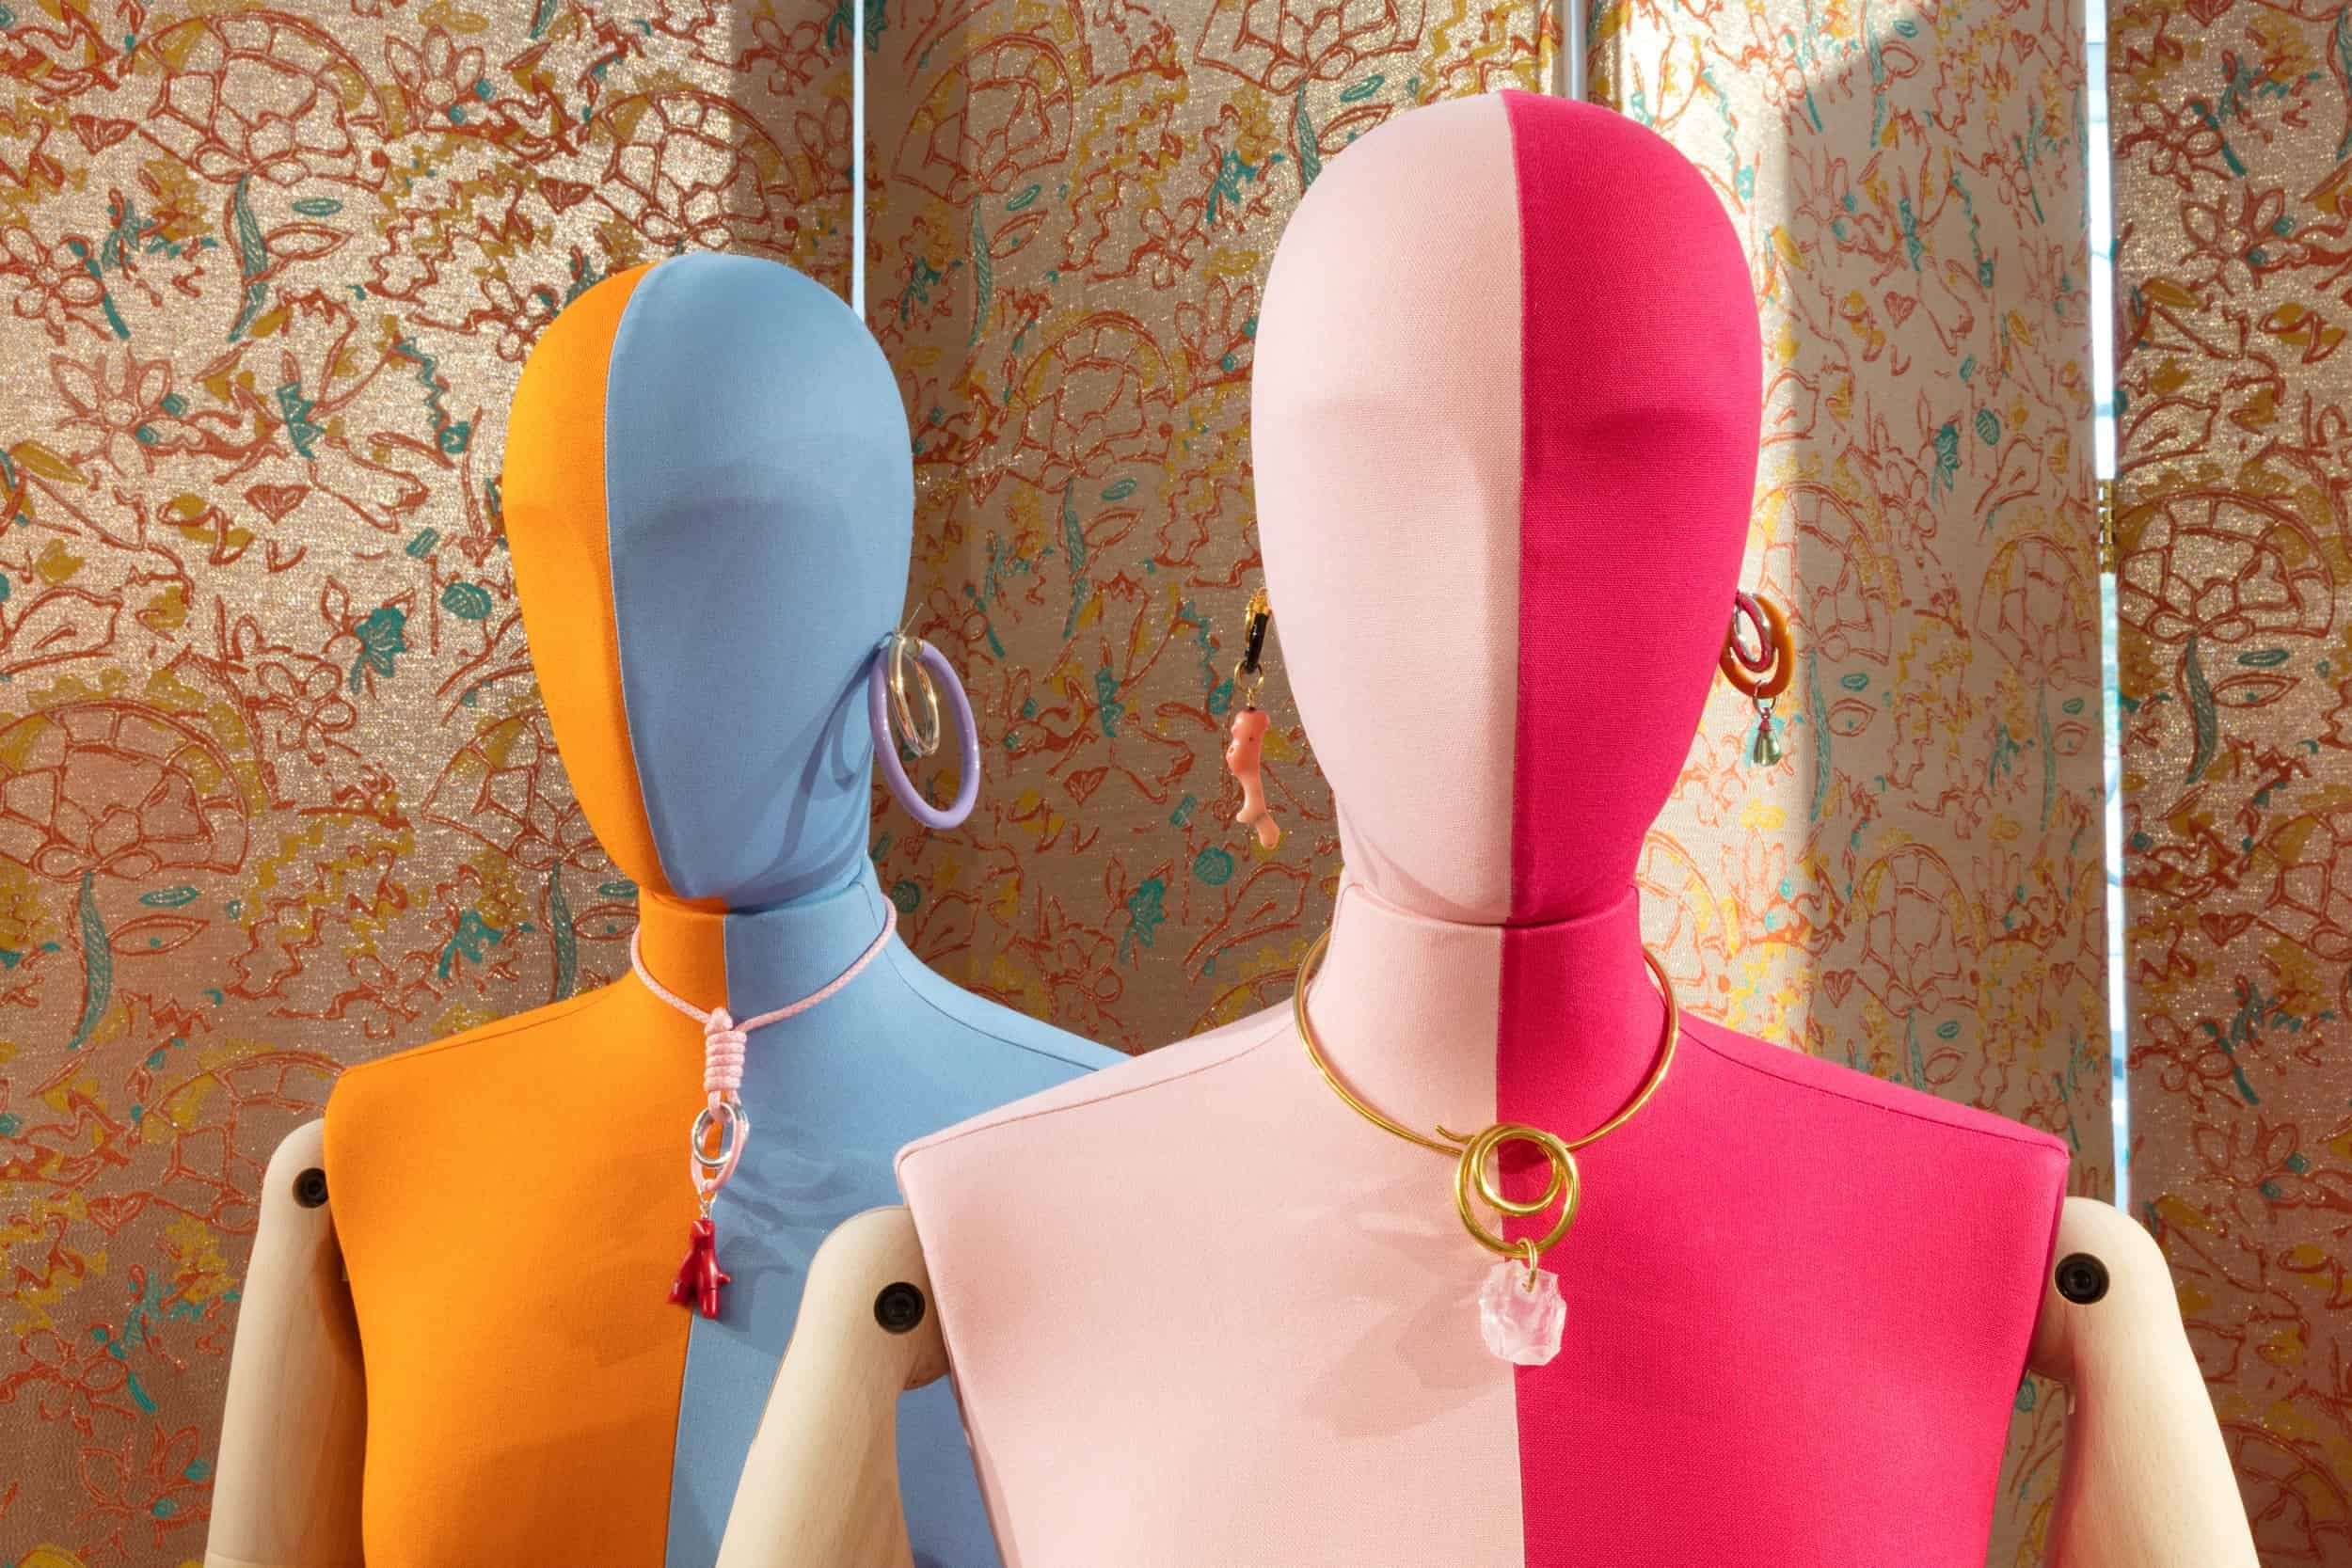 Bespoke Bust Forms for Peter Pilotto at London Design Festival